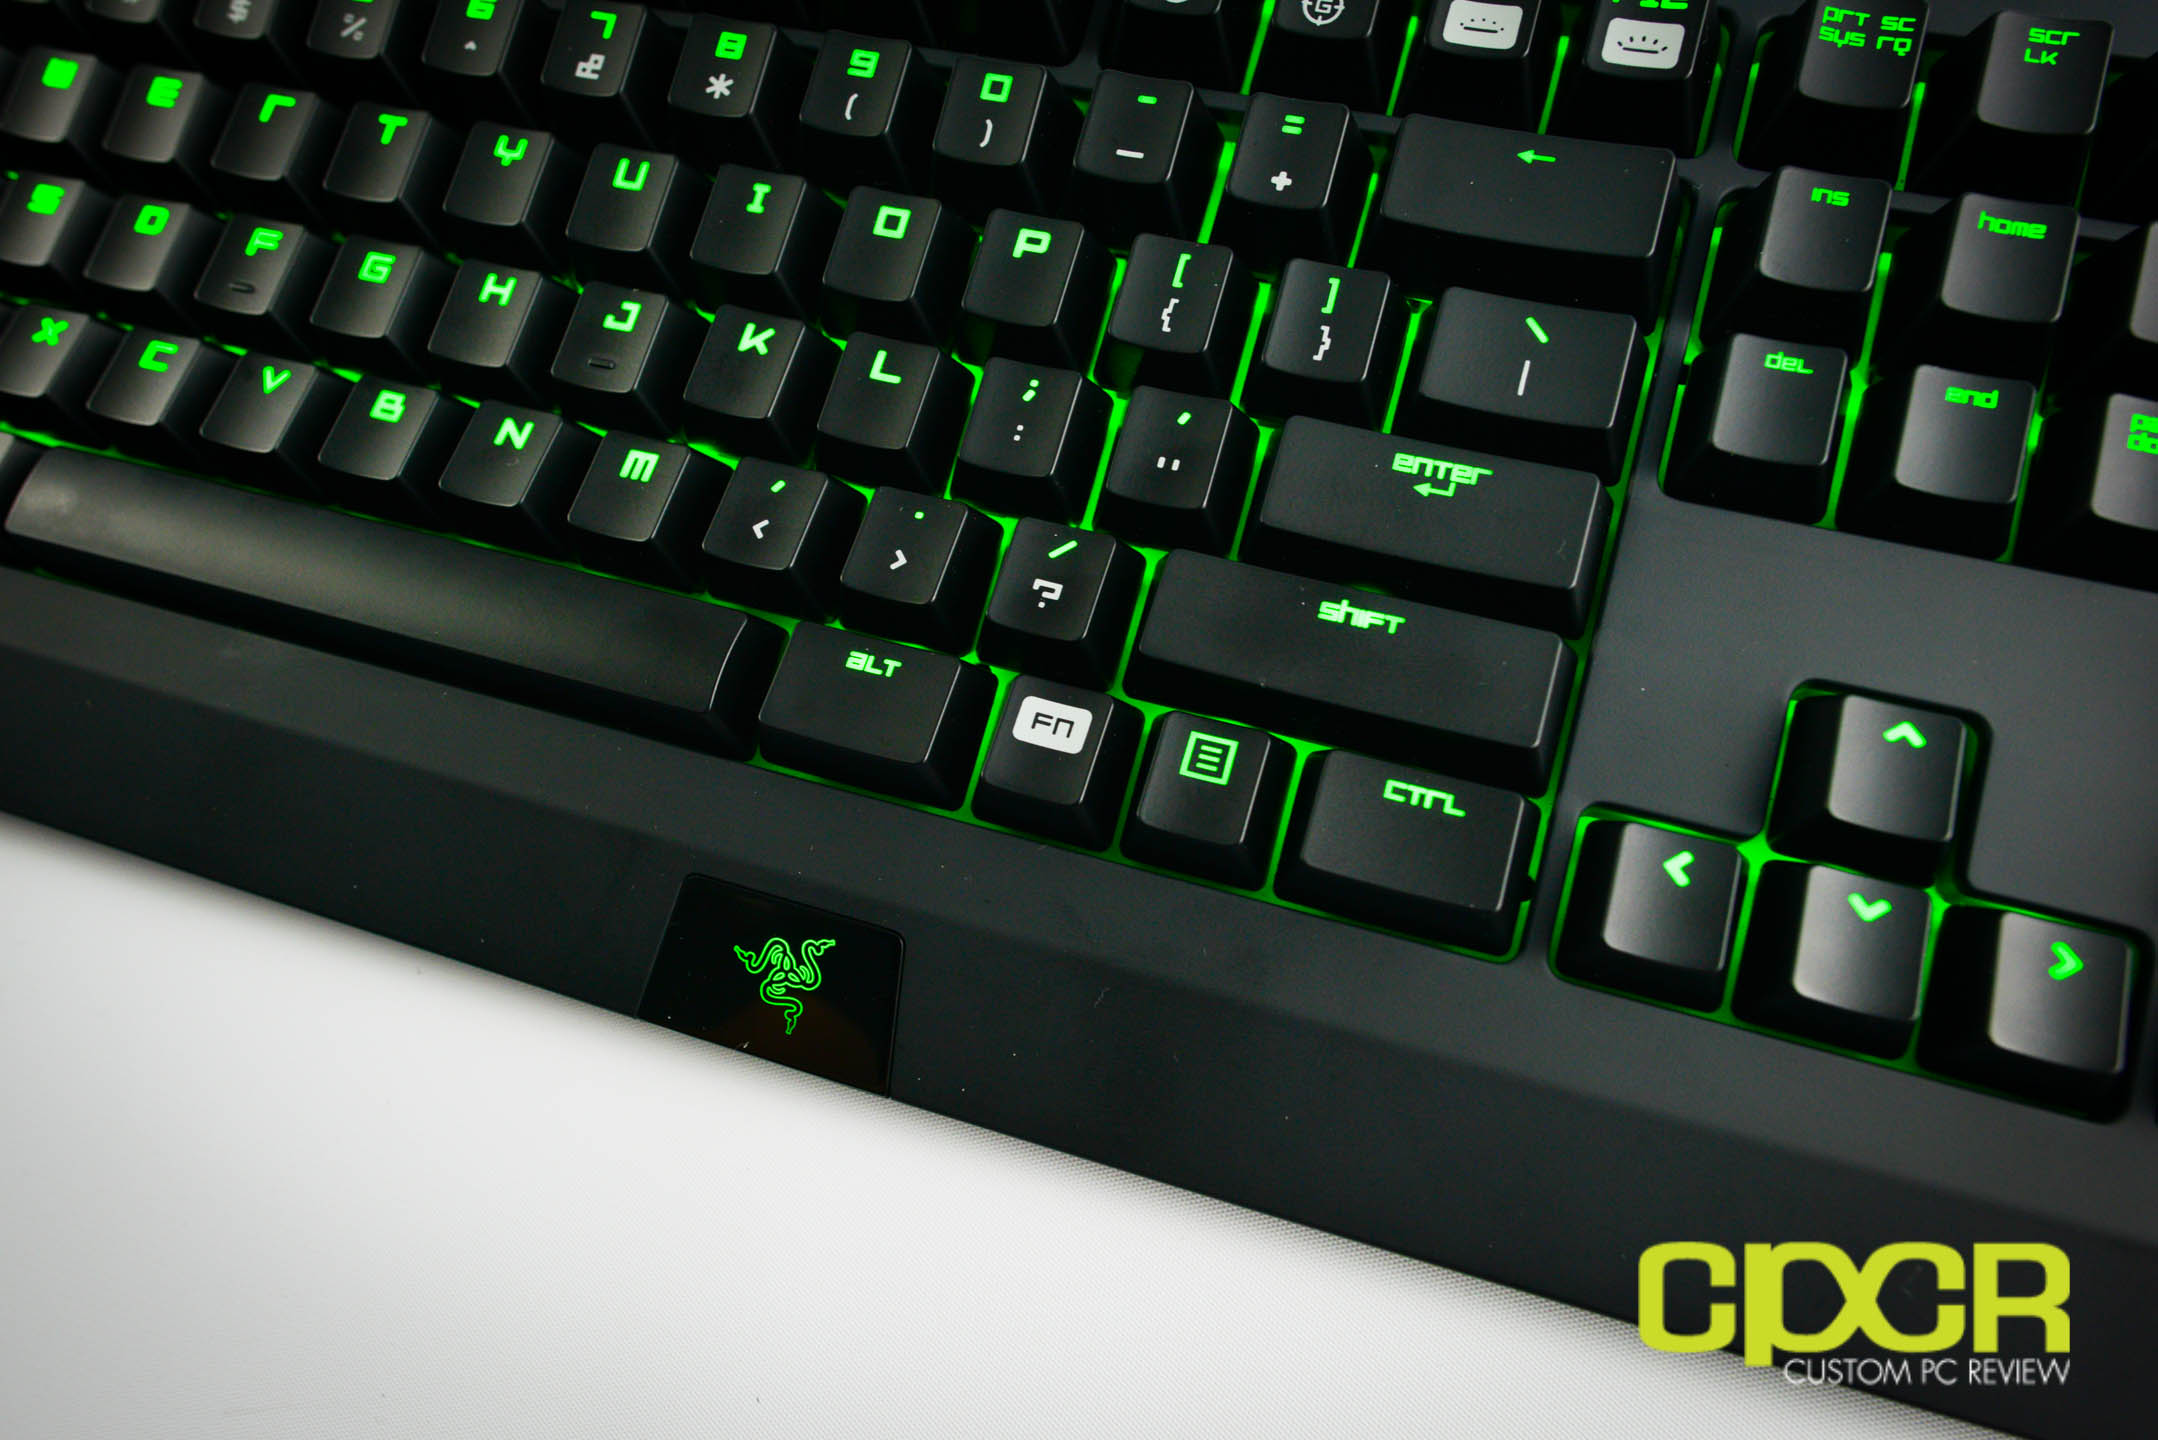 Review: Razer Blackwidow Ultimate 2014 (Razer Green Switches) | Custom PC Review